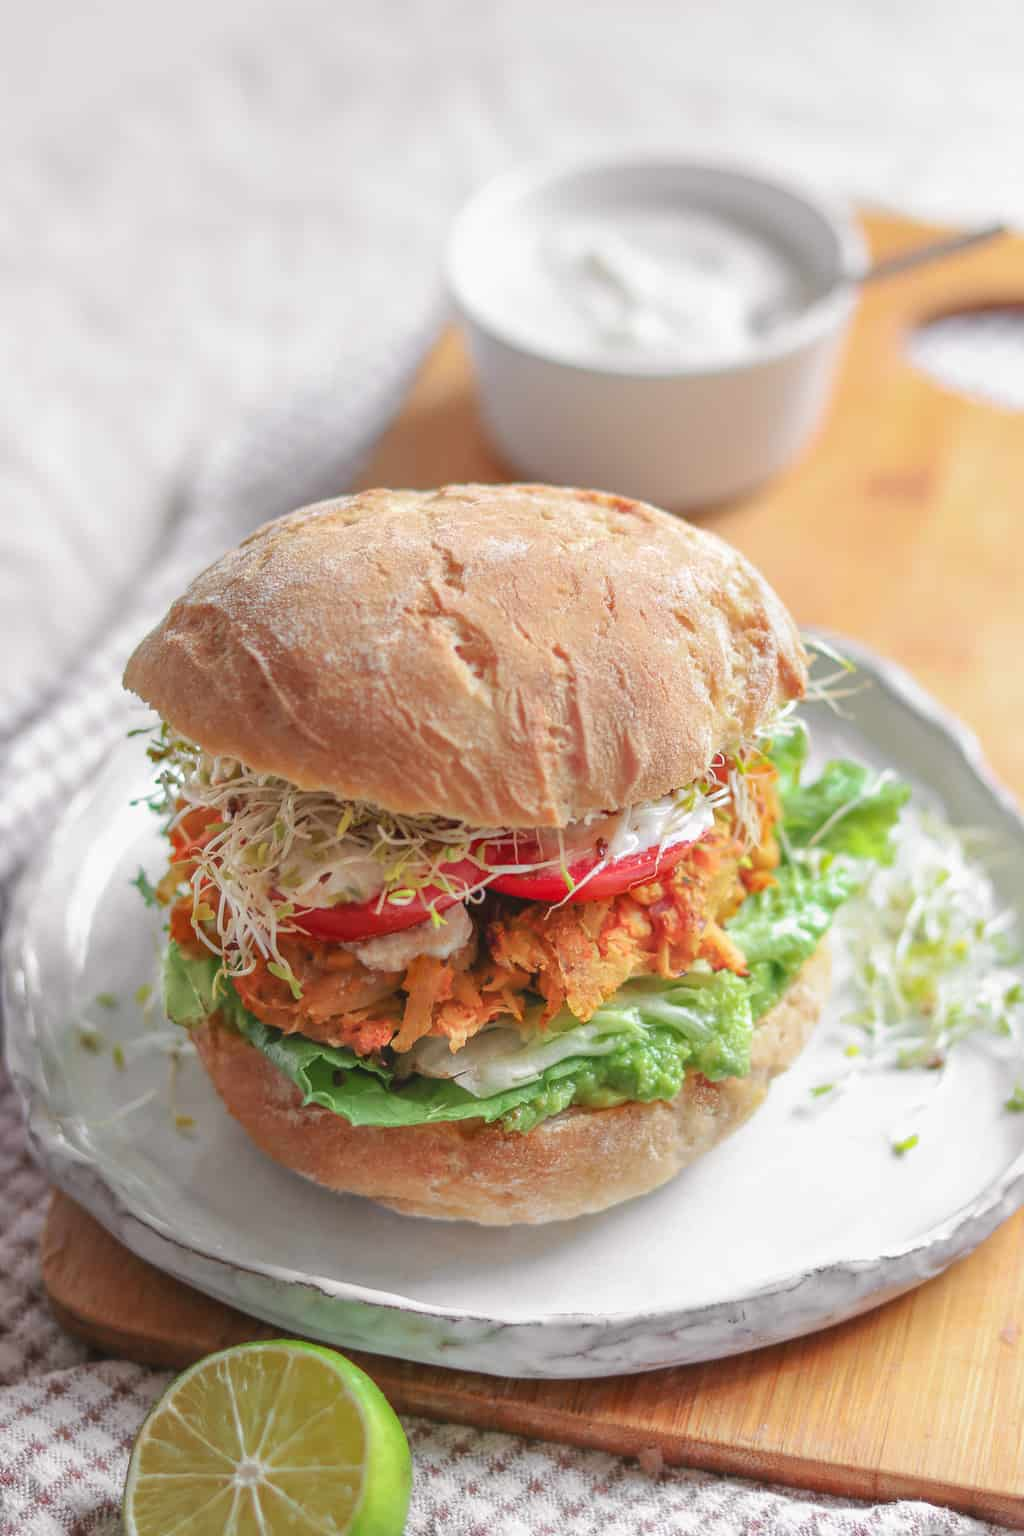 Vegan sandwich with chickpea fritters, avocado, alfalfa sprouts, tomatoes, mixed greens and soy yoghurt on a white plate